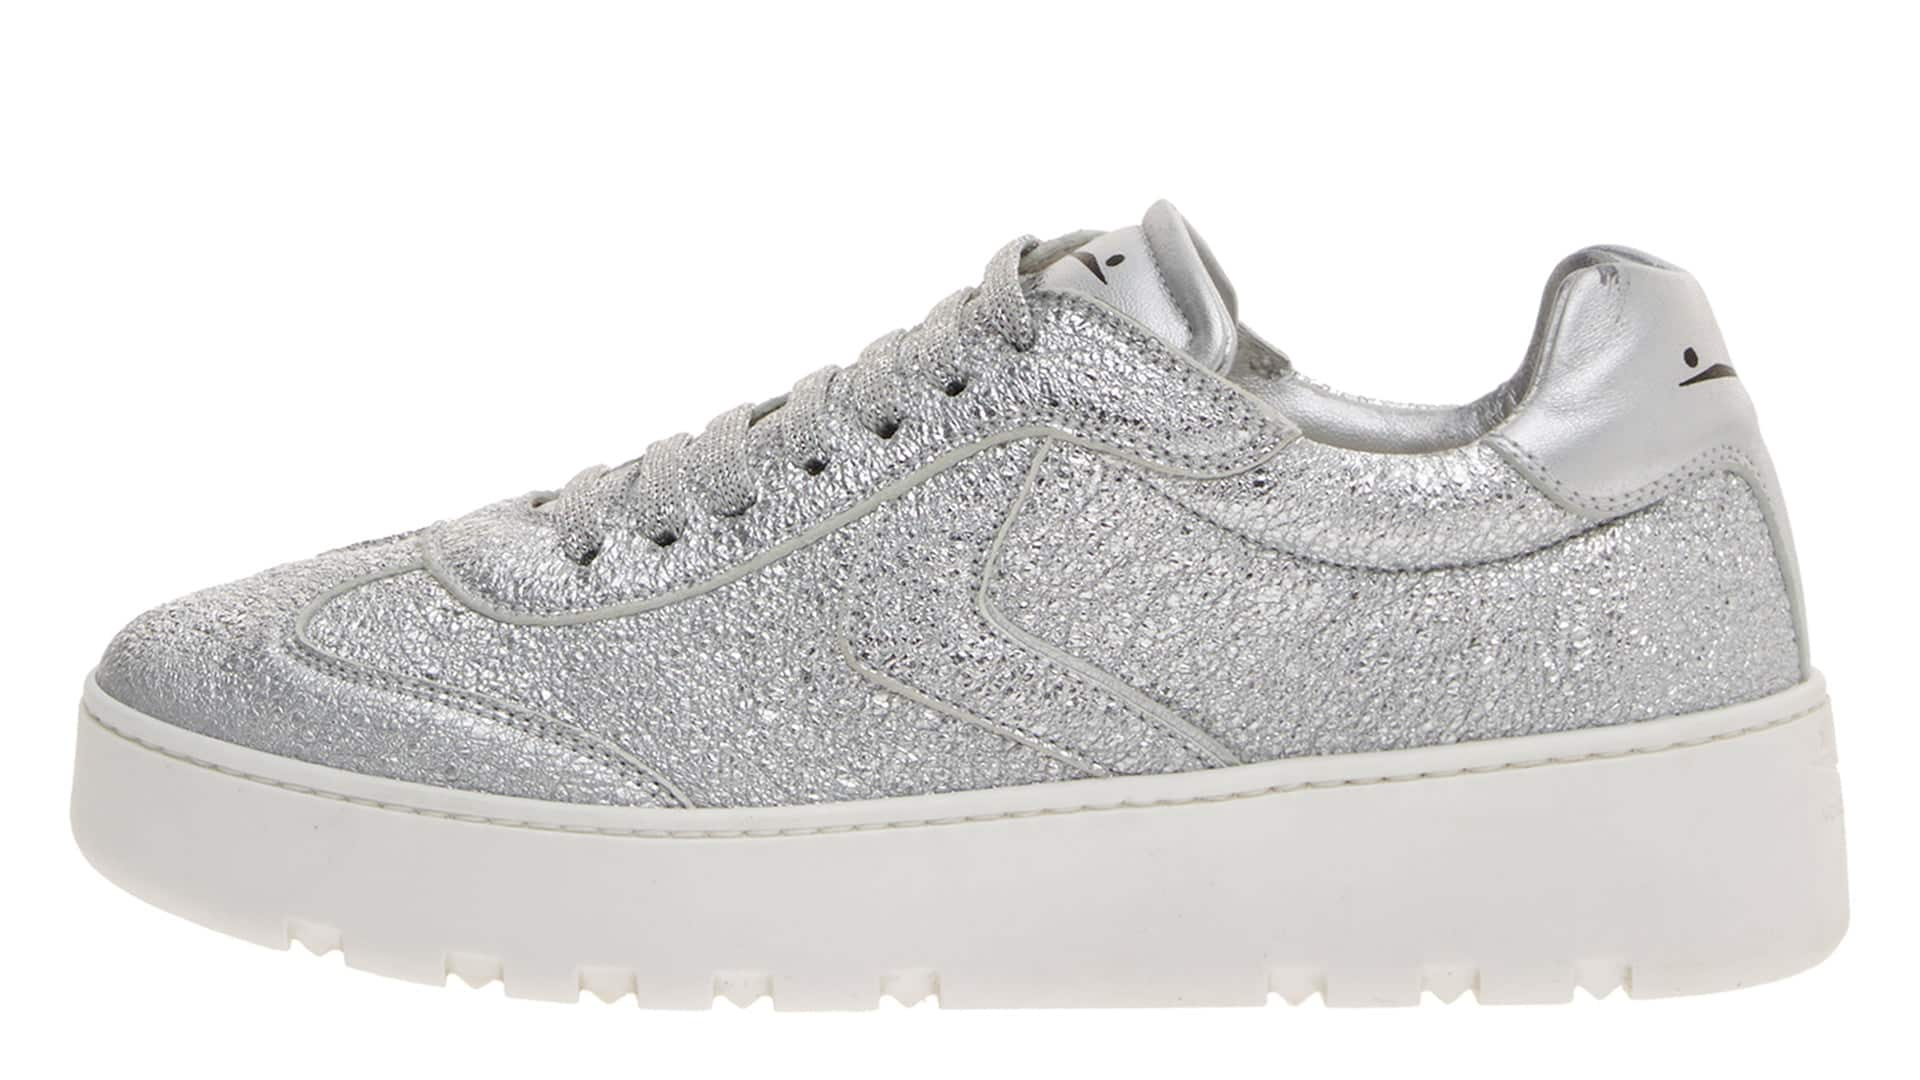 MARY - SNEAKERS IN PELLE - ARGENTO